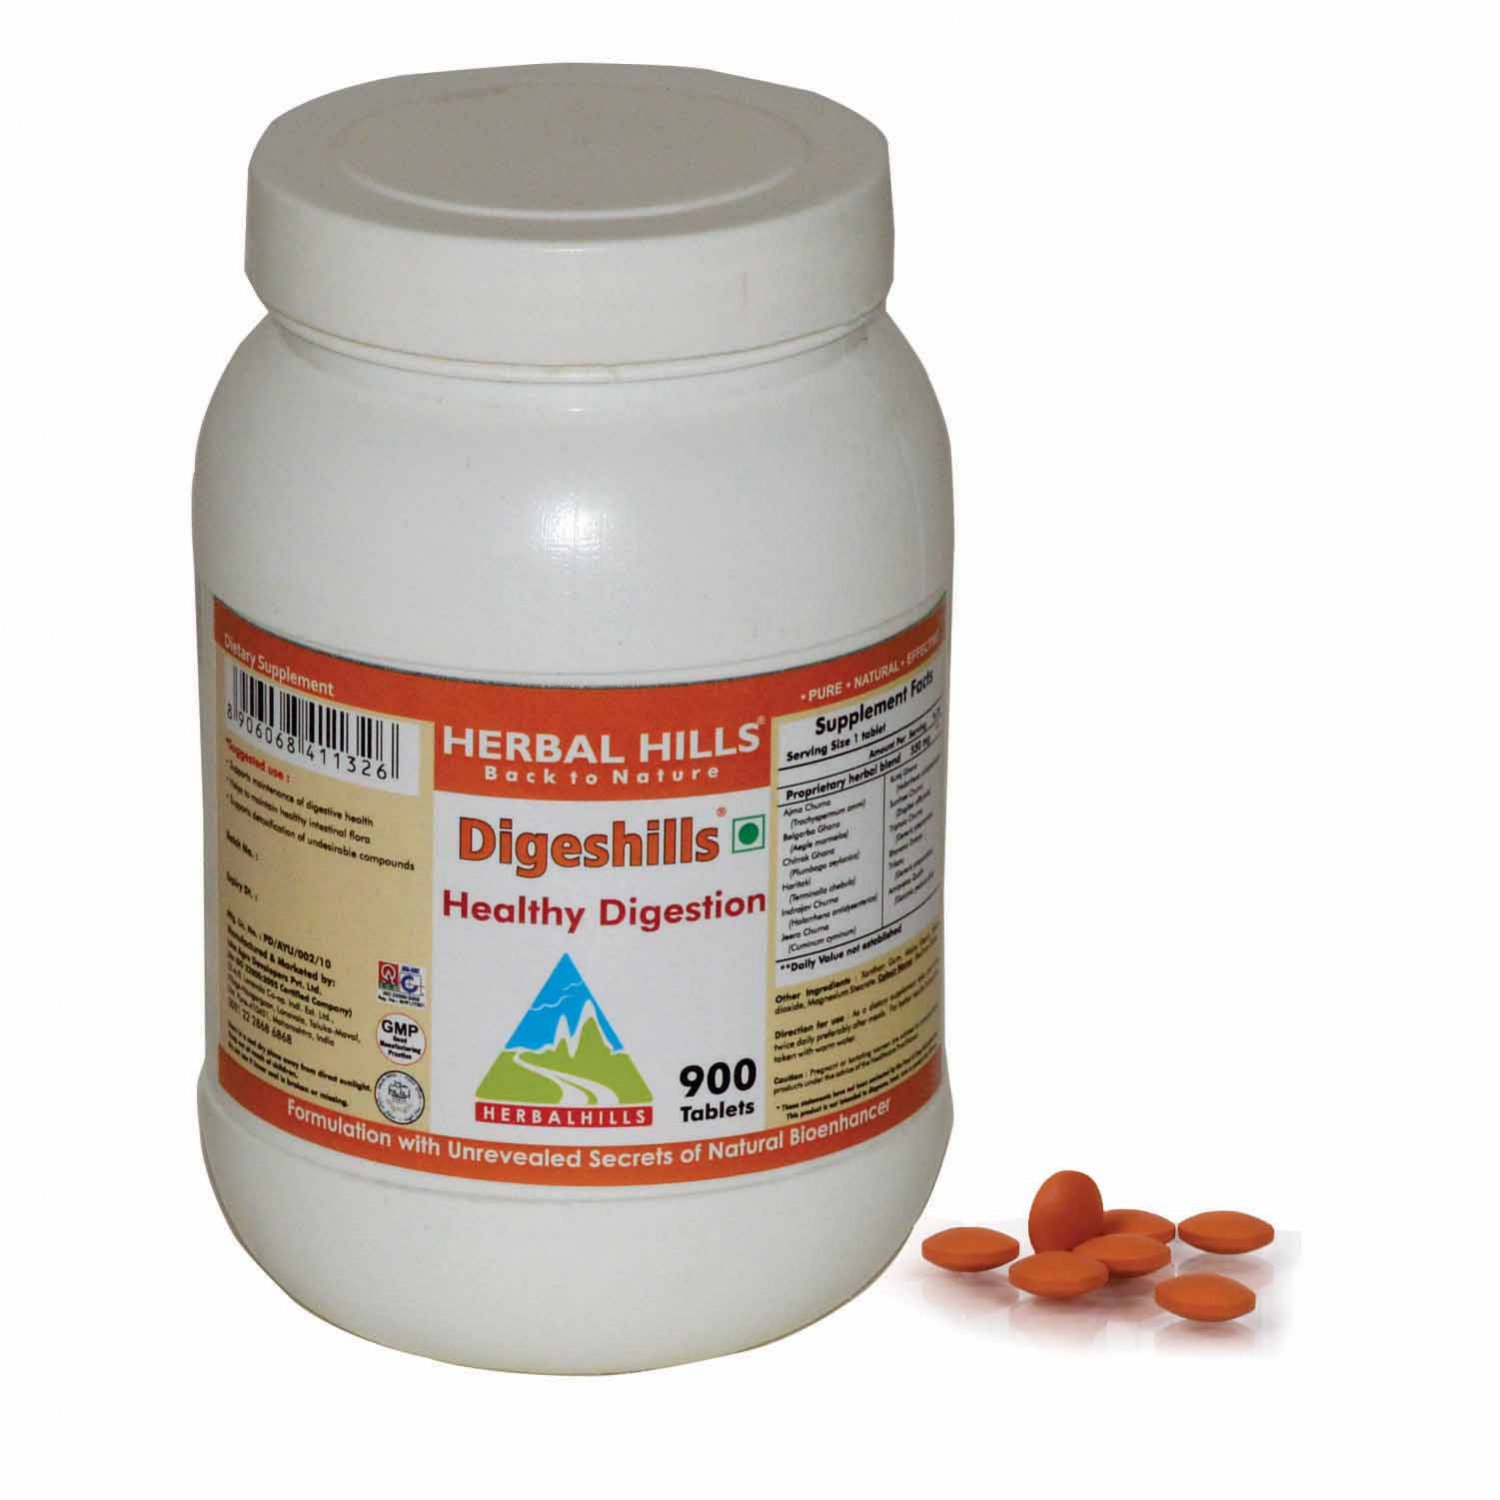 Digeshills 900 Tablets - Healthy Digestion